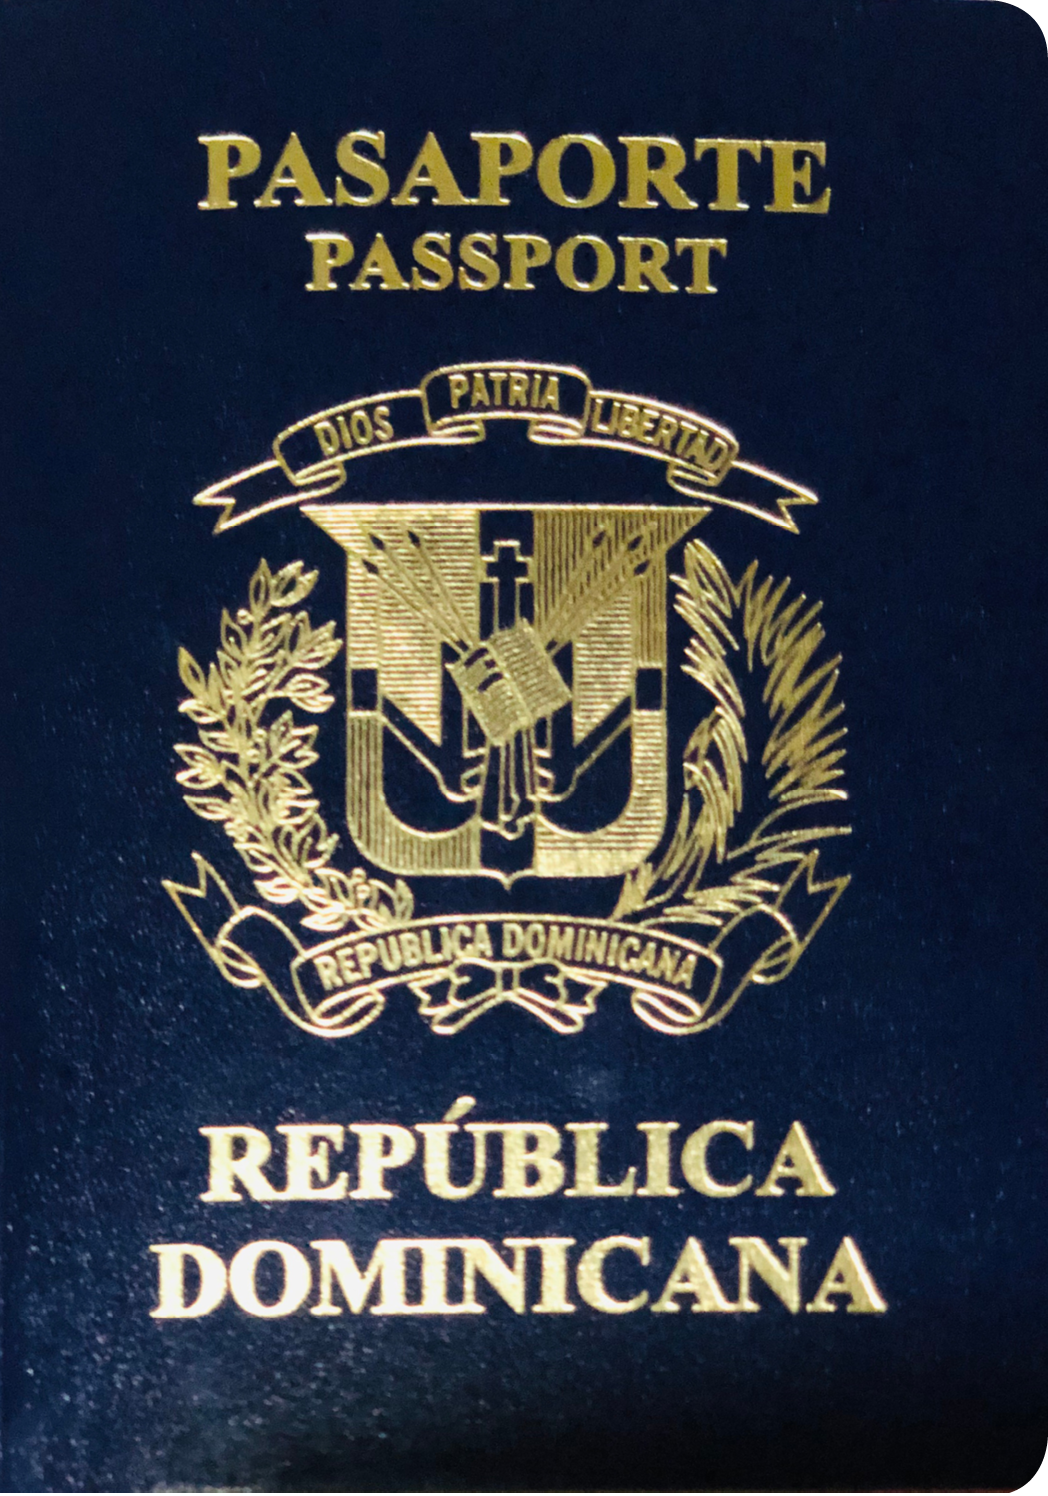 A regular or ordinary Dominican Republic passport - Front side